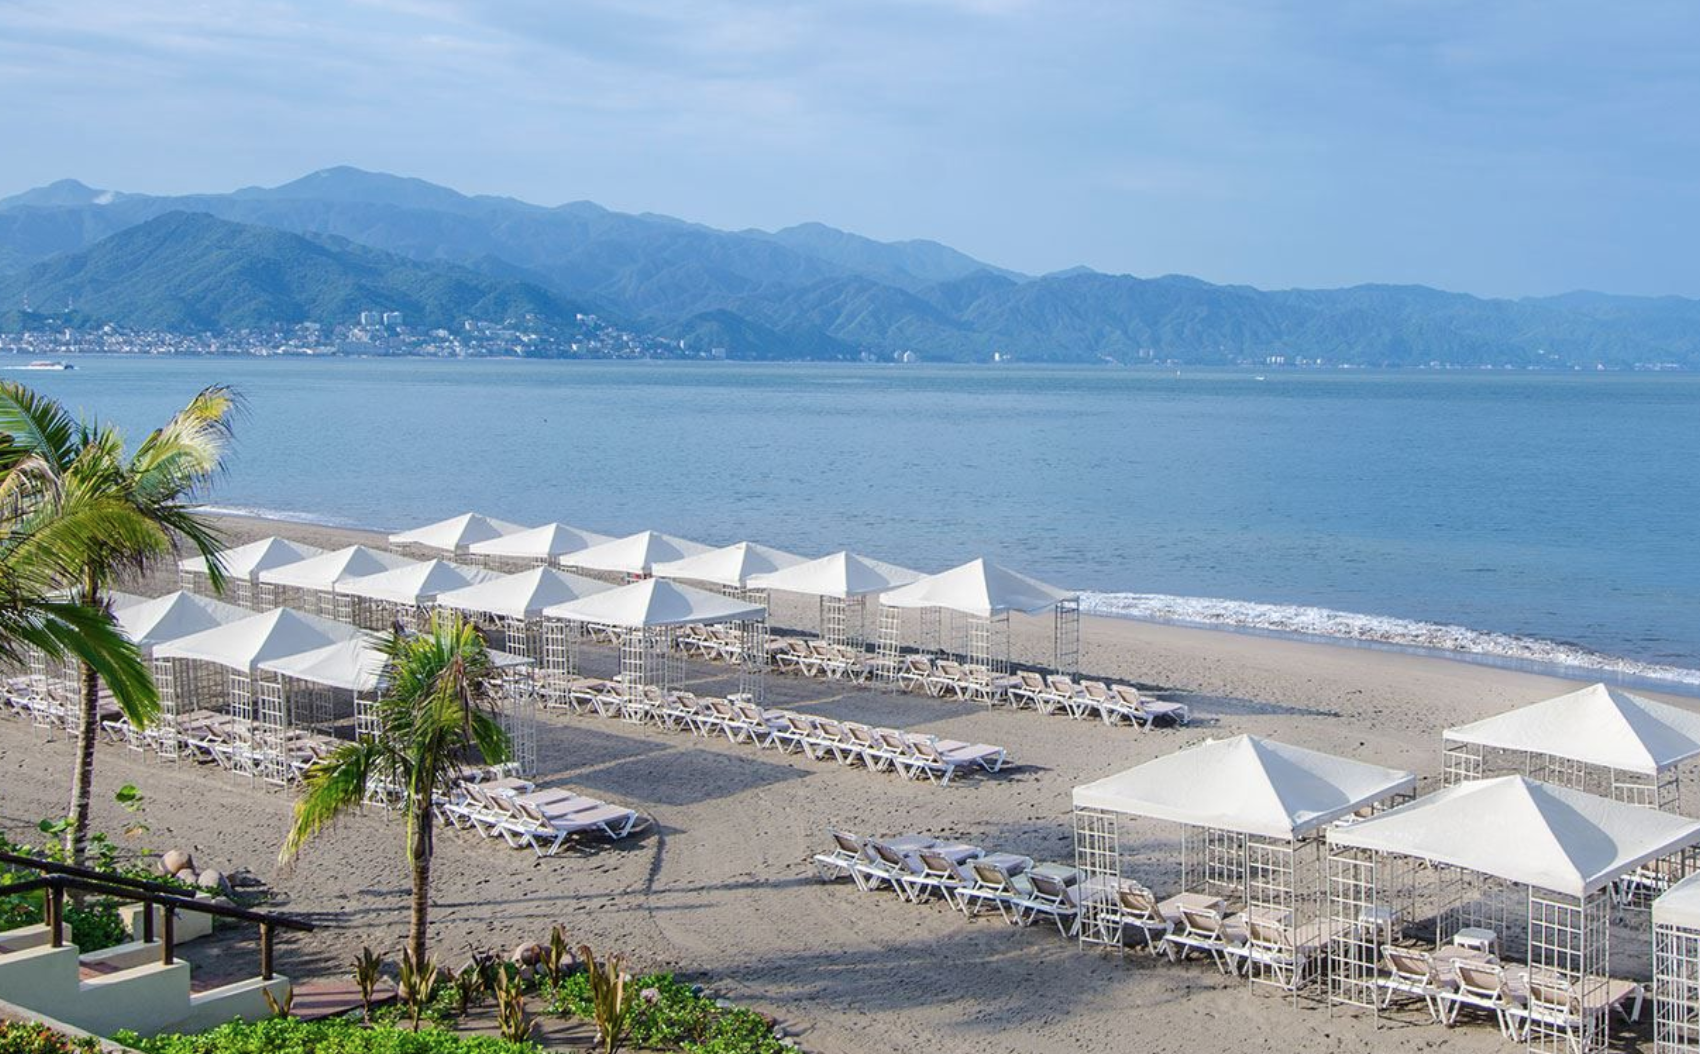 If you've ever visited Puerto Vallarta, you know its beaches and spectacular views. It can be equally relaxing and adventurous, based on your vacation desires.